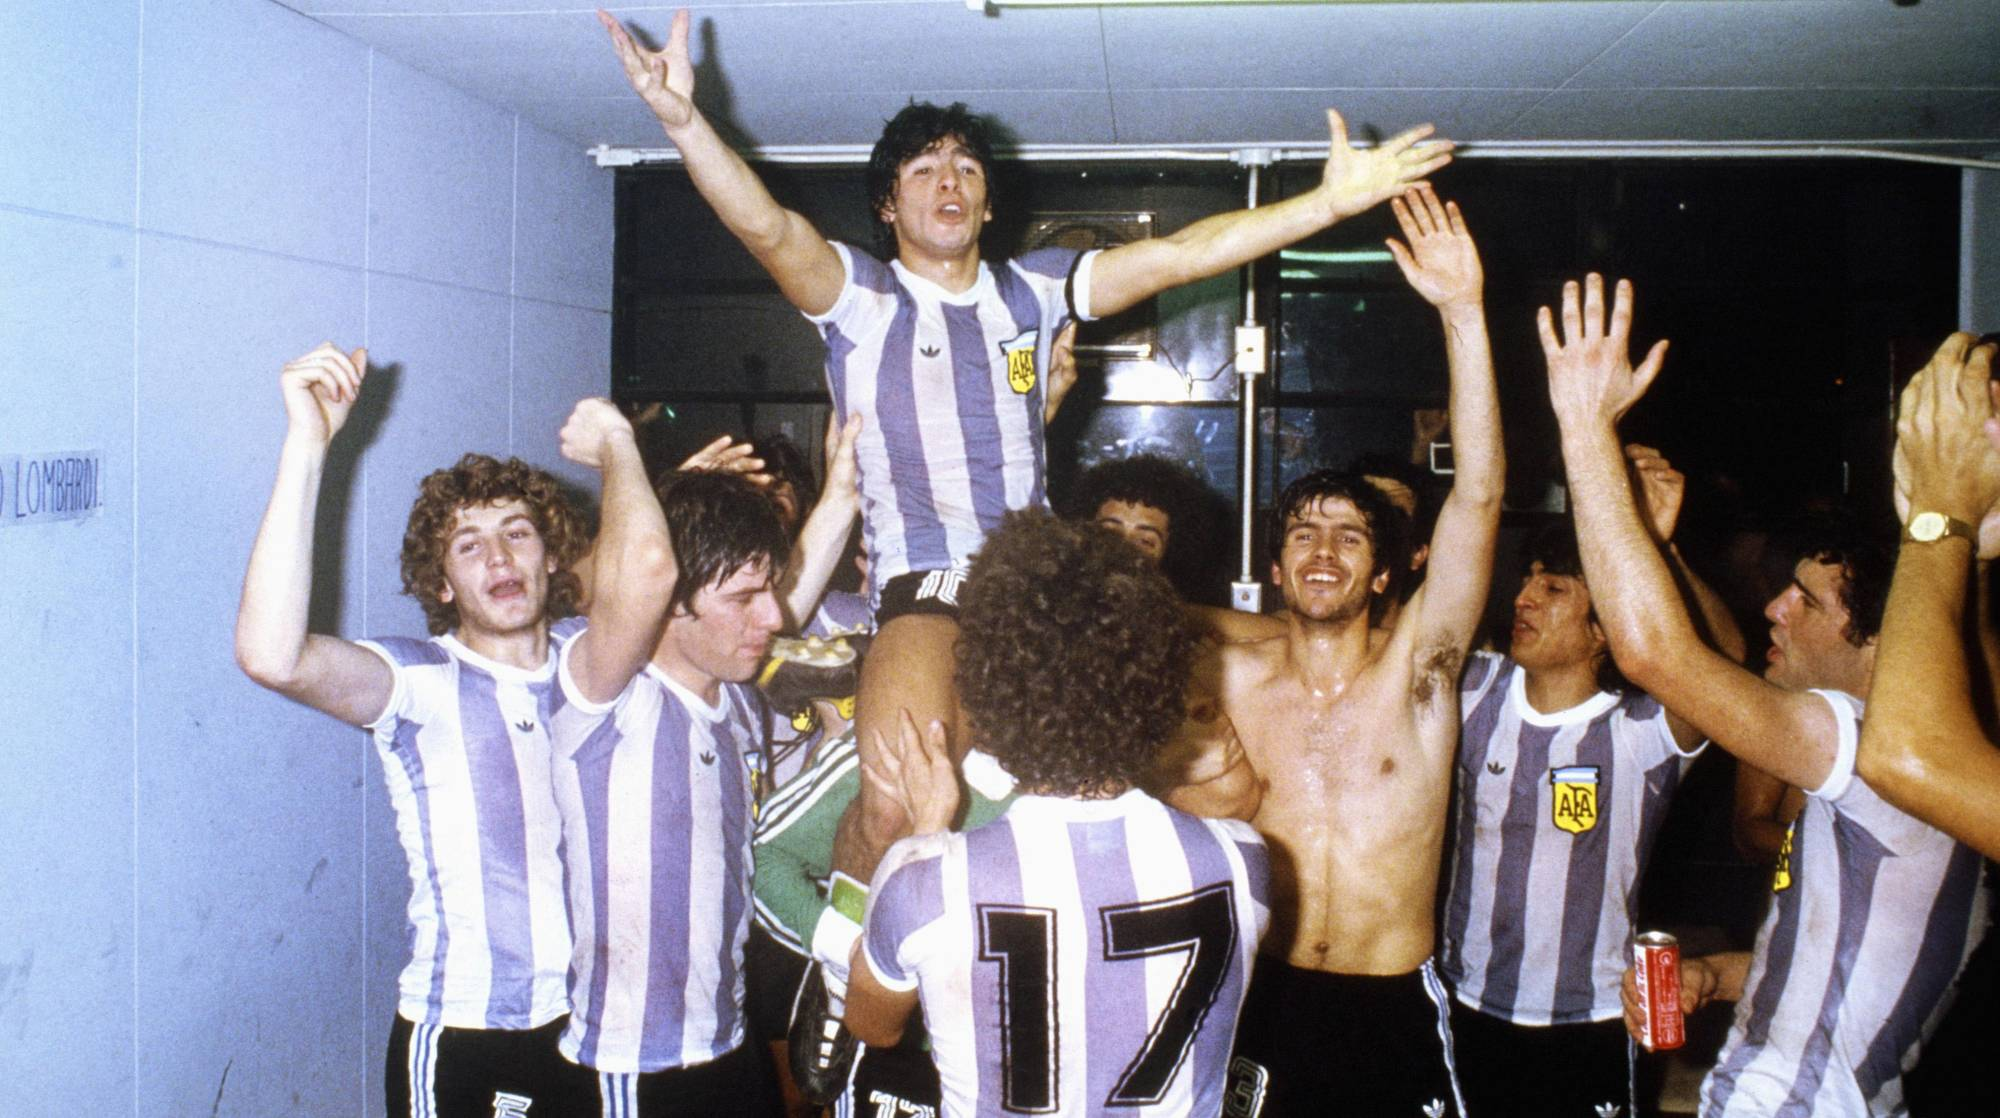 Diego Maradona (above) celebrates with his Argentina teammates after beating the Soviet Union to win the 1979 FIFA World Youth Championship on Sept. 7, 1979, at Tokyo's National Stadium. | GETTY IMAGES / VIA KYODO